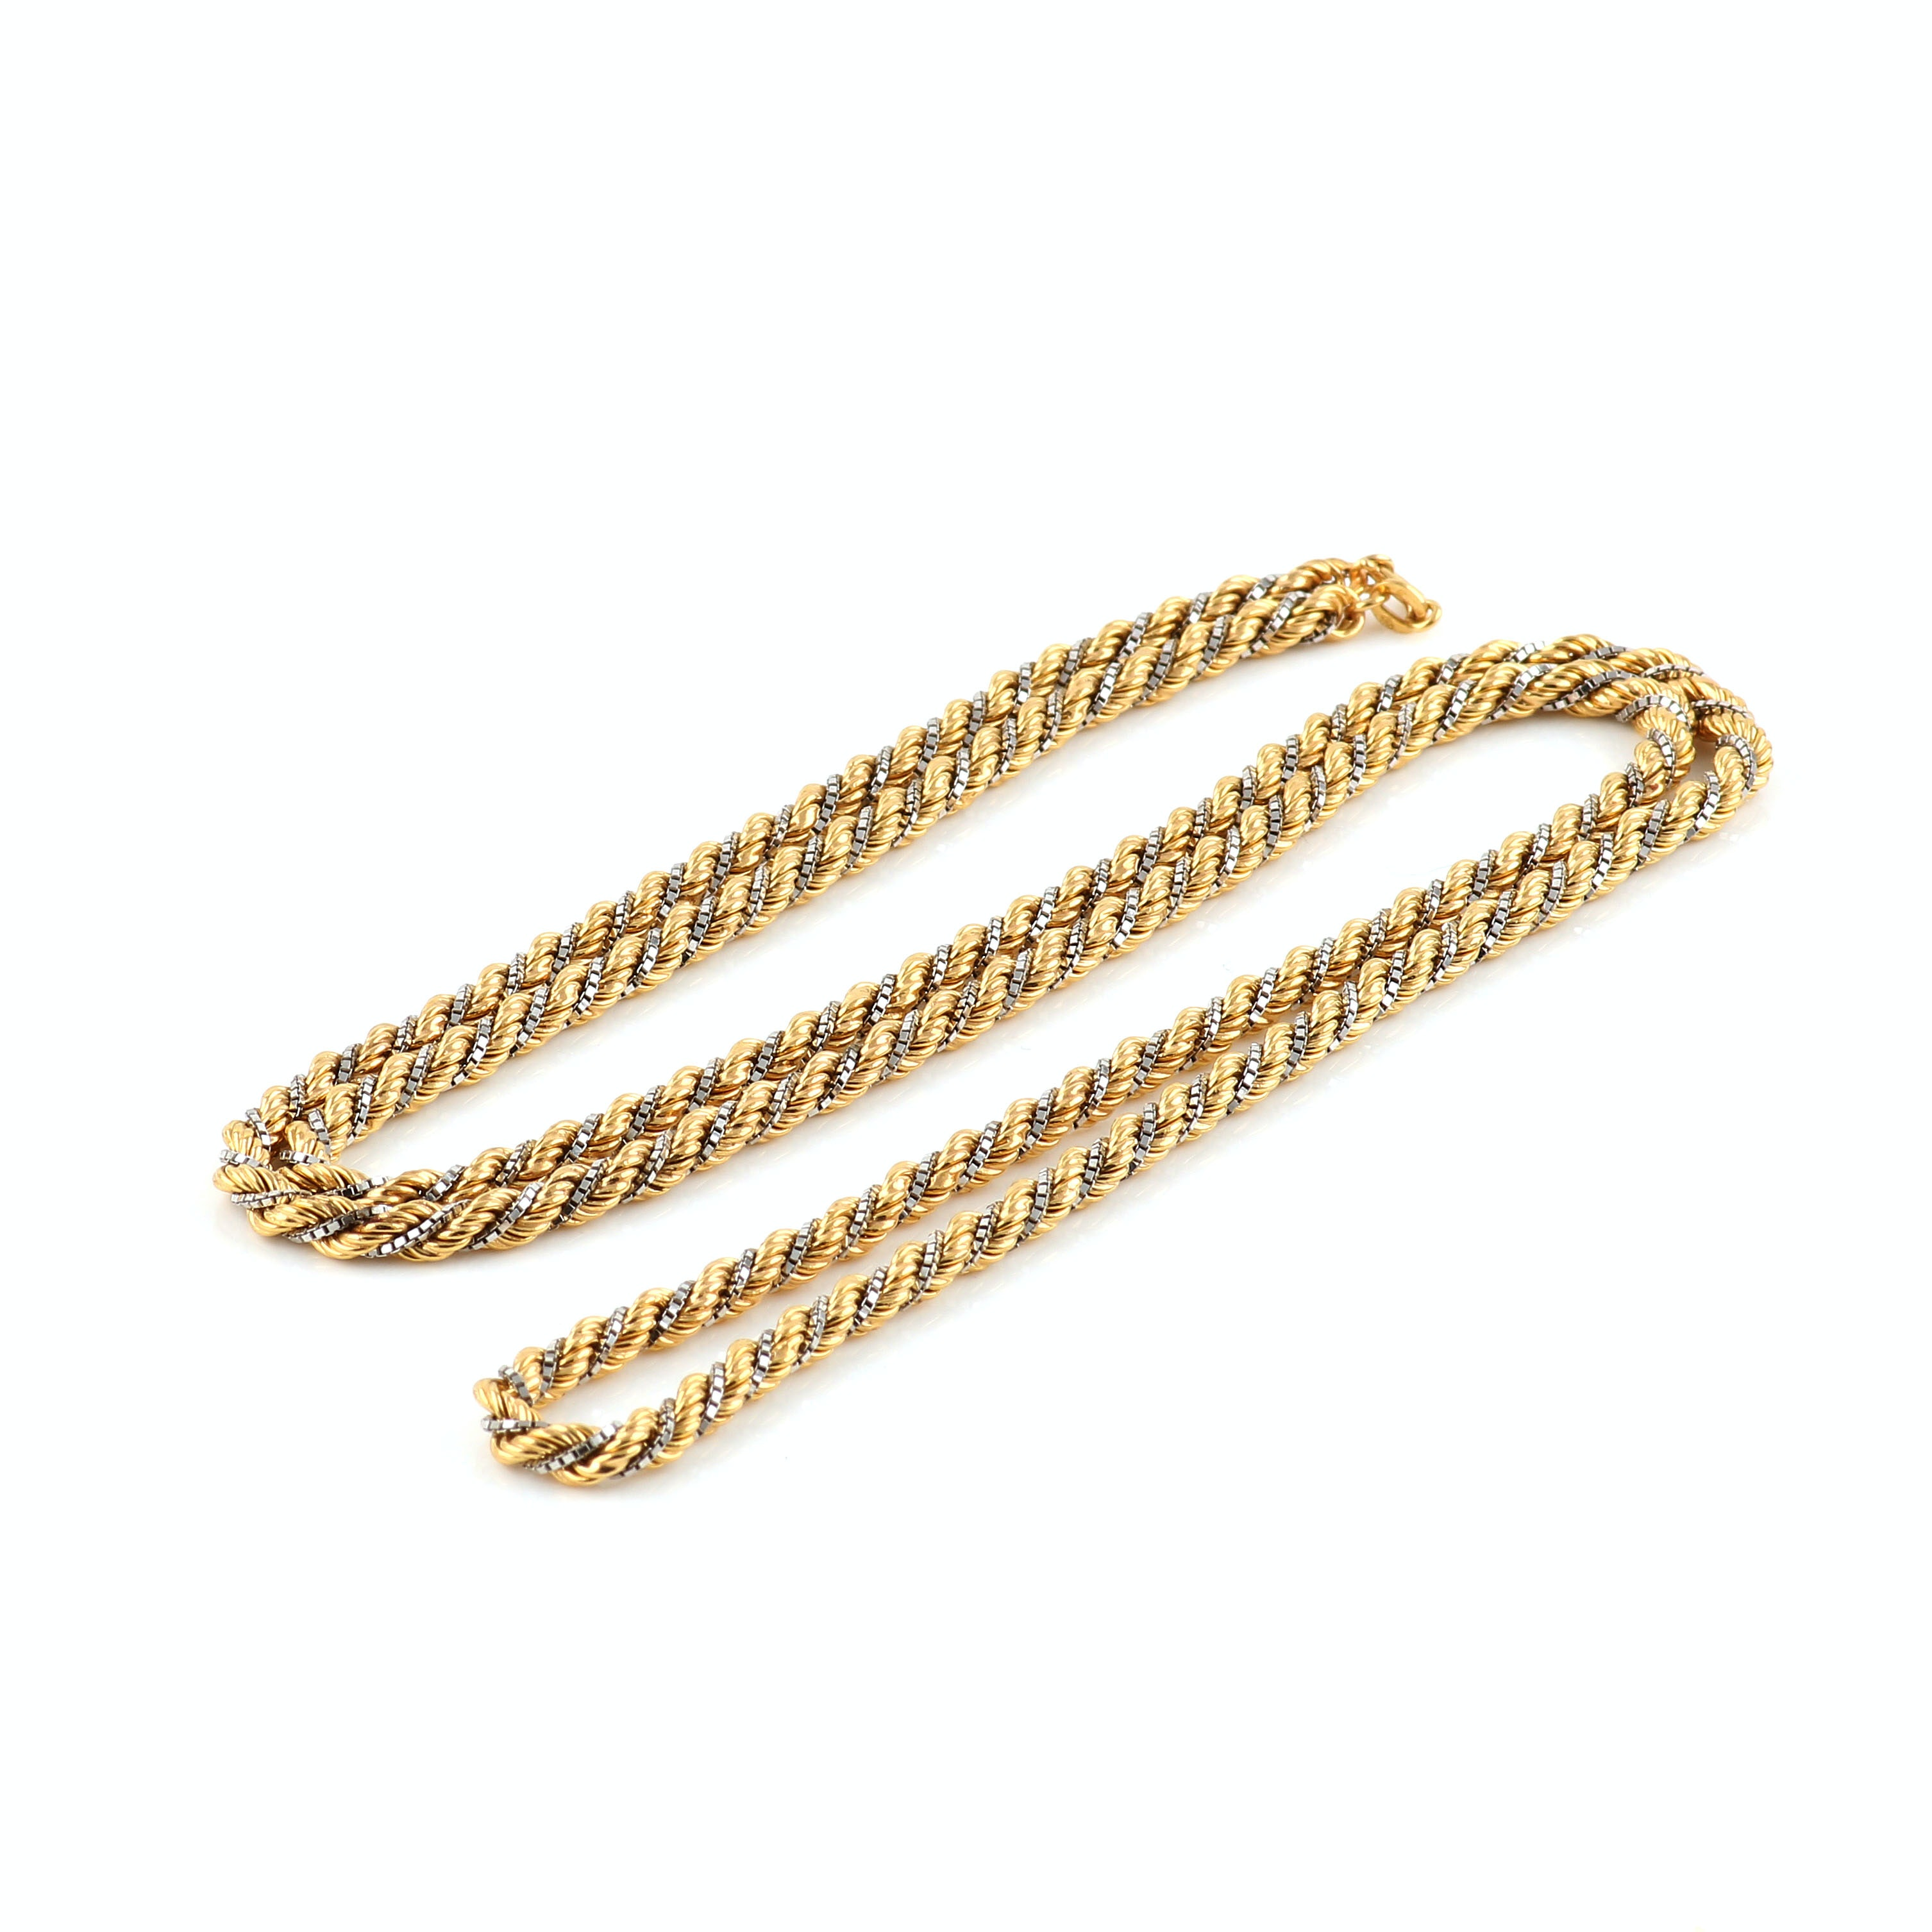 18K Yellow and White Gold Twisted Chain